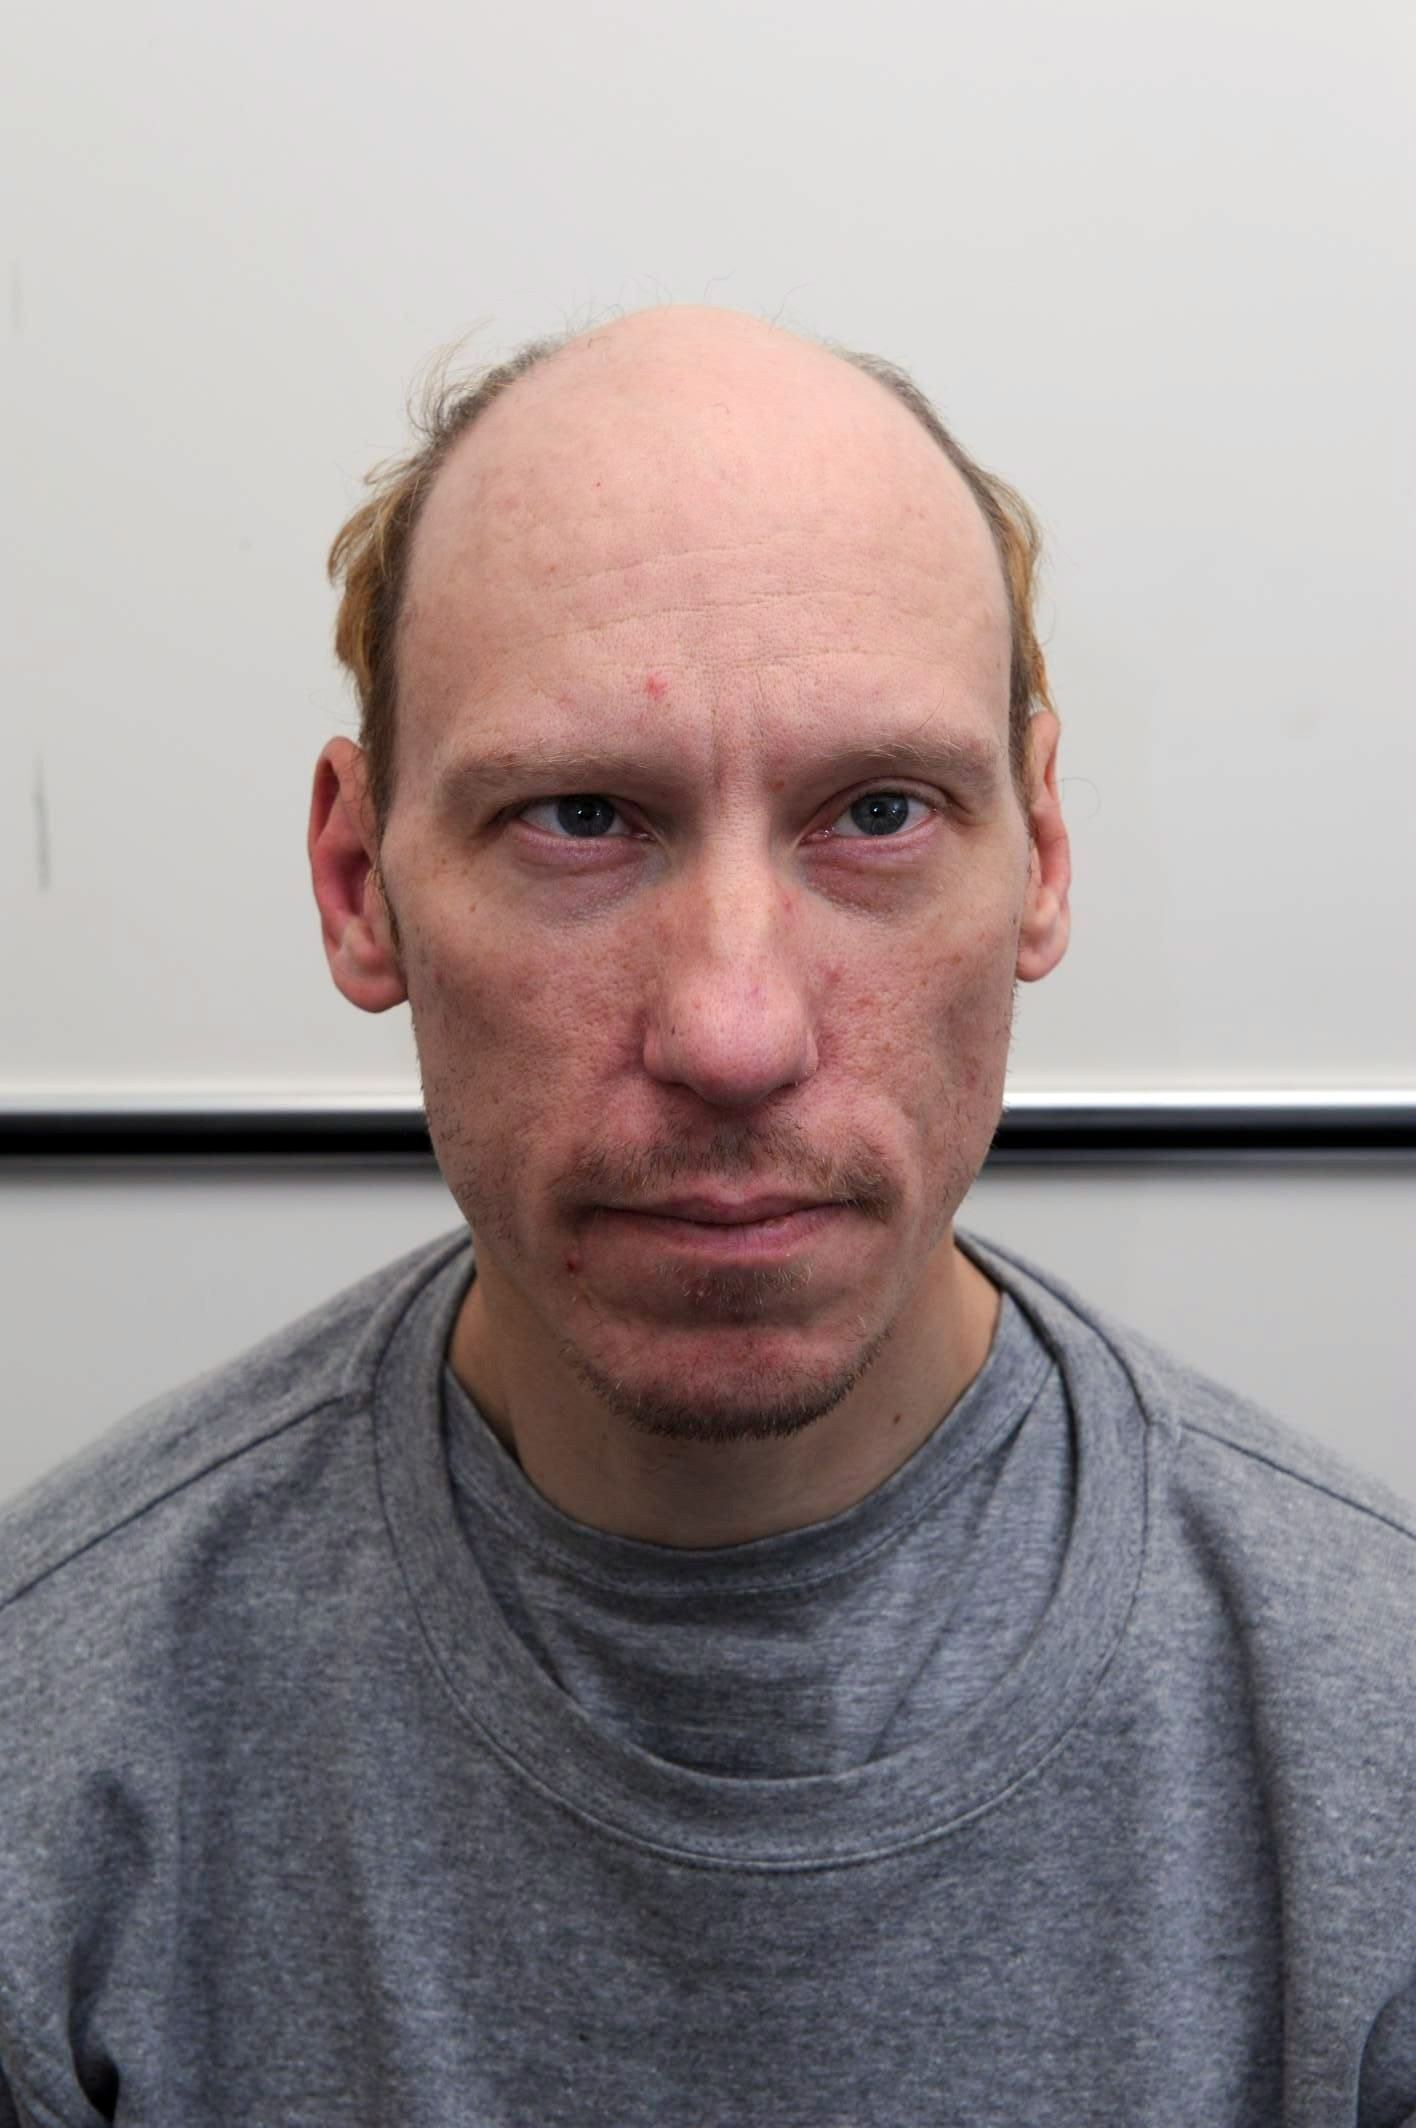 Date rape murderer Stephen Port used GHB to drug his victims. Credit: PA